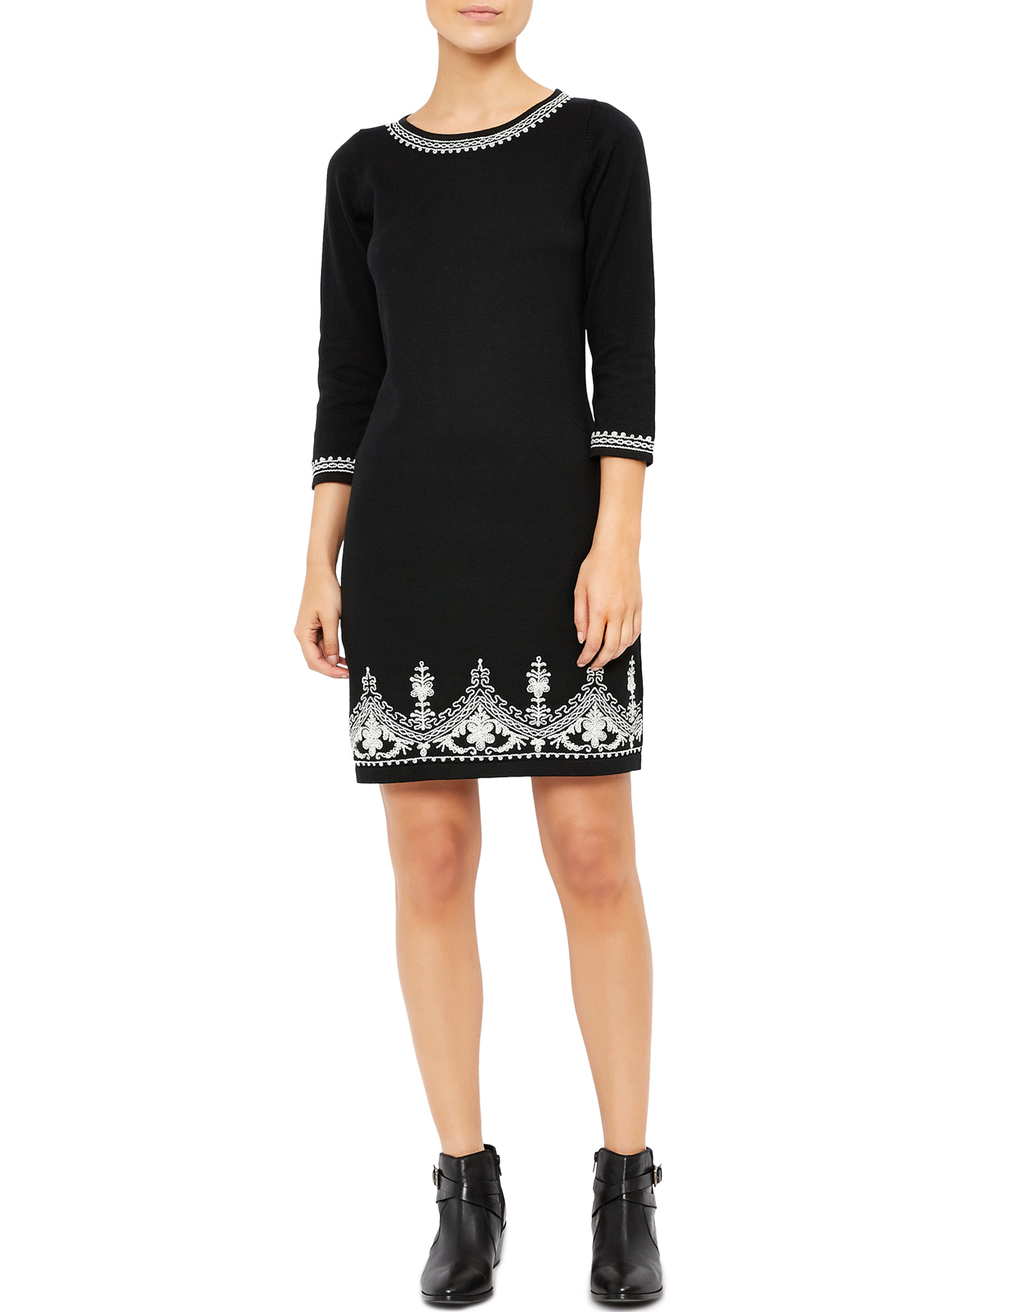 Tina Cornelli Knitted Dress - style: shift; secondary colour: white; predominant colour: black; occasions: evening; length: just above the knee; fit: body skimming; fibres: cotton - 100%; neckline: crew; sleeve length: 3/4 length; sleeve style: standard; pattern type: fabric; pattern: patterned/print; texture group: jersey - stretchy/drapey; embellishment: embroidered; multicoloured: multicoloured; season: s/s 2016; wardrobe: event; embellishment location: hem, neck, sleeve/cuff